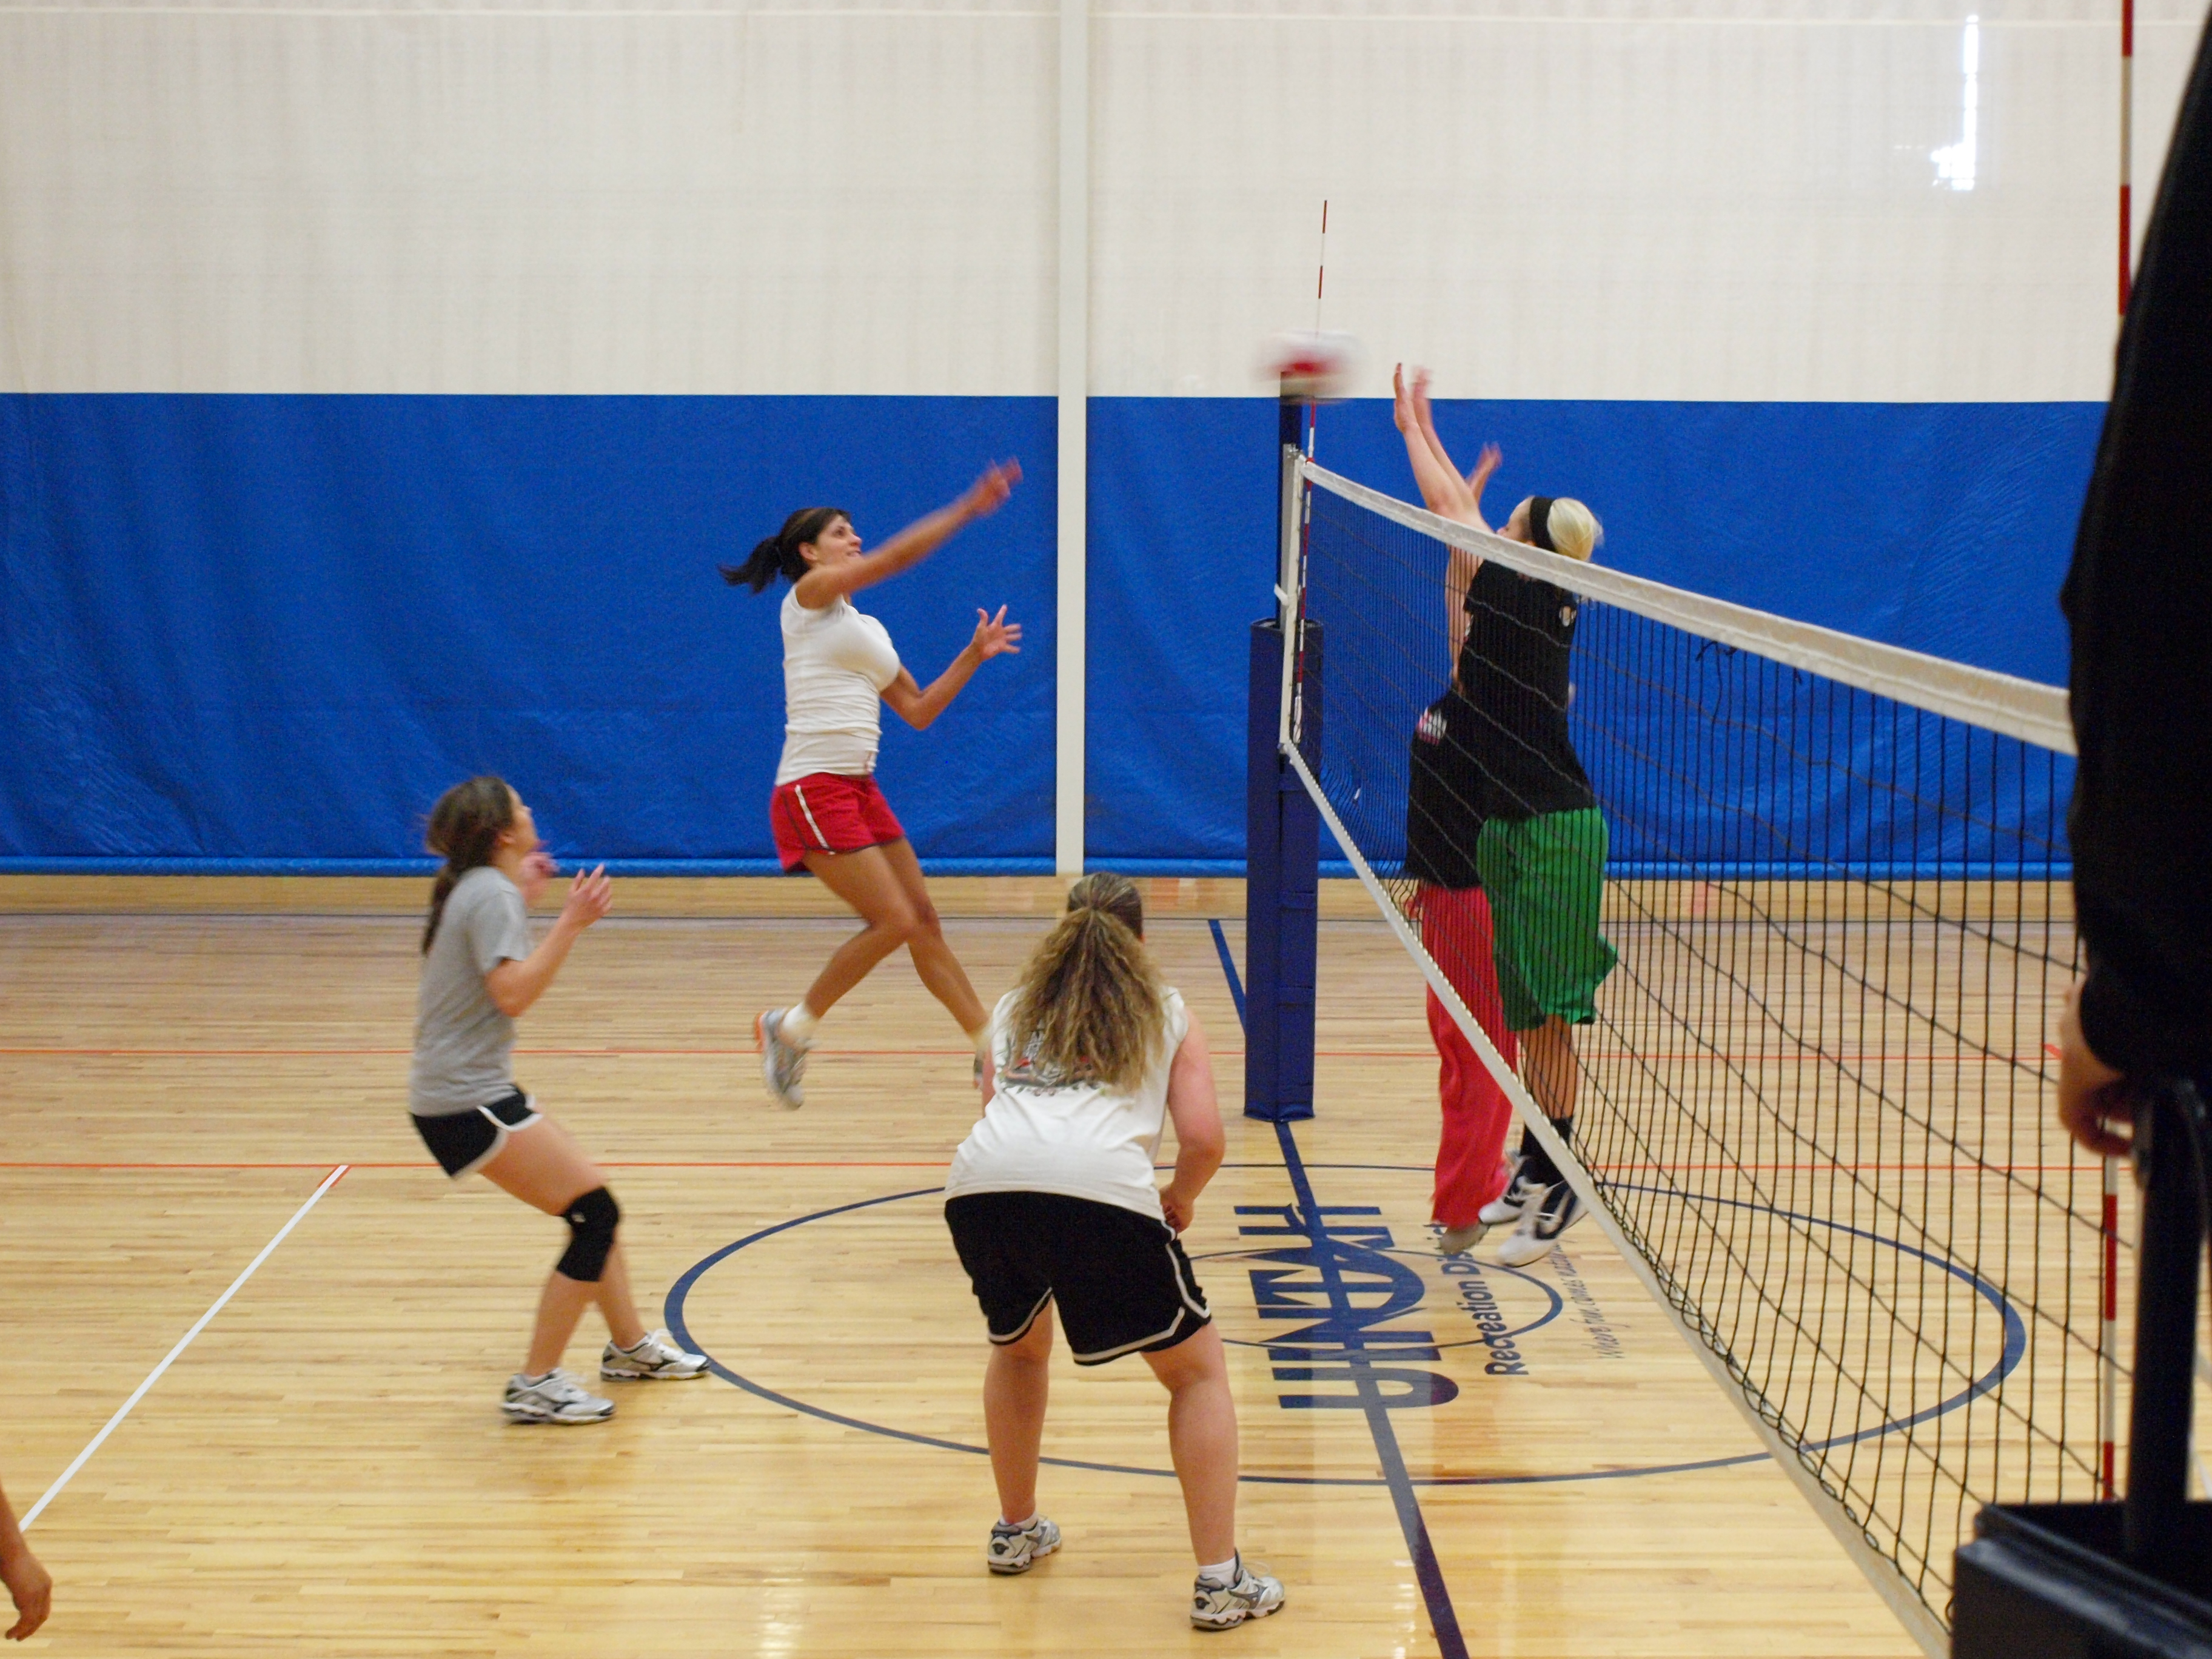 Split Mountain Volleyball Tournaments - Uintah Recreation District